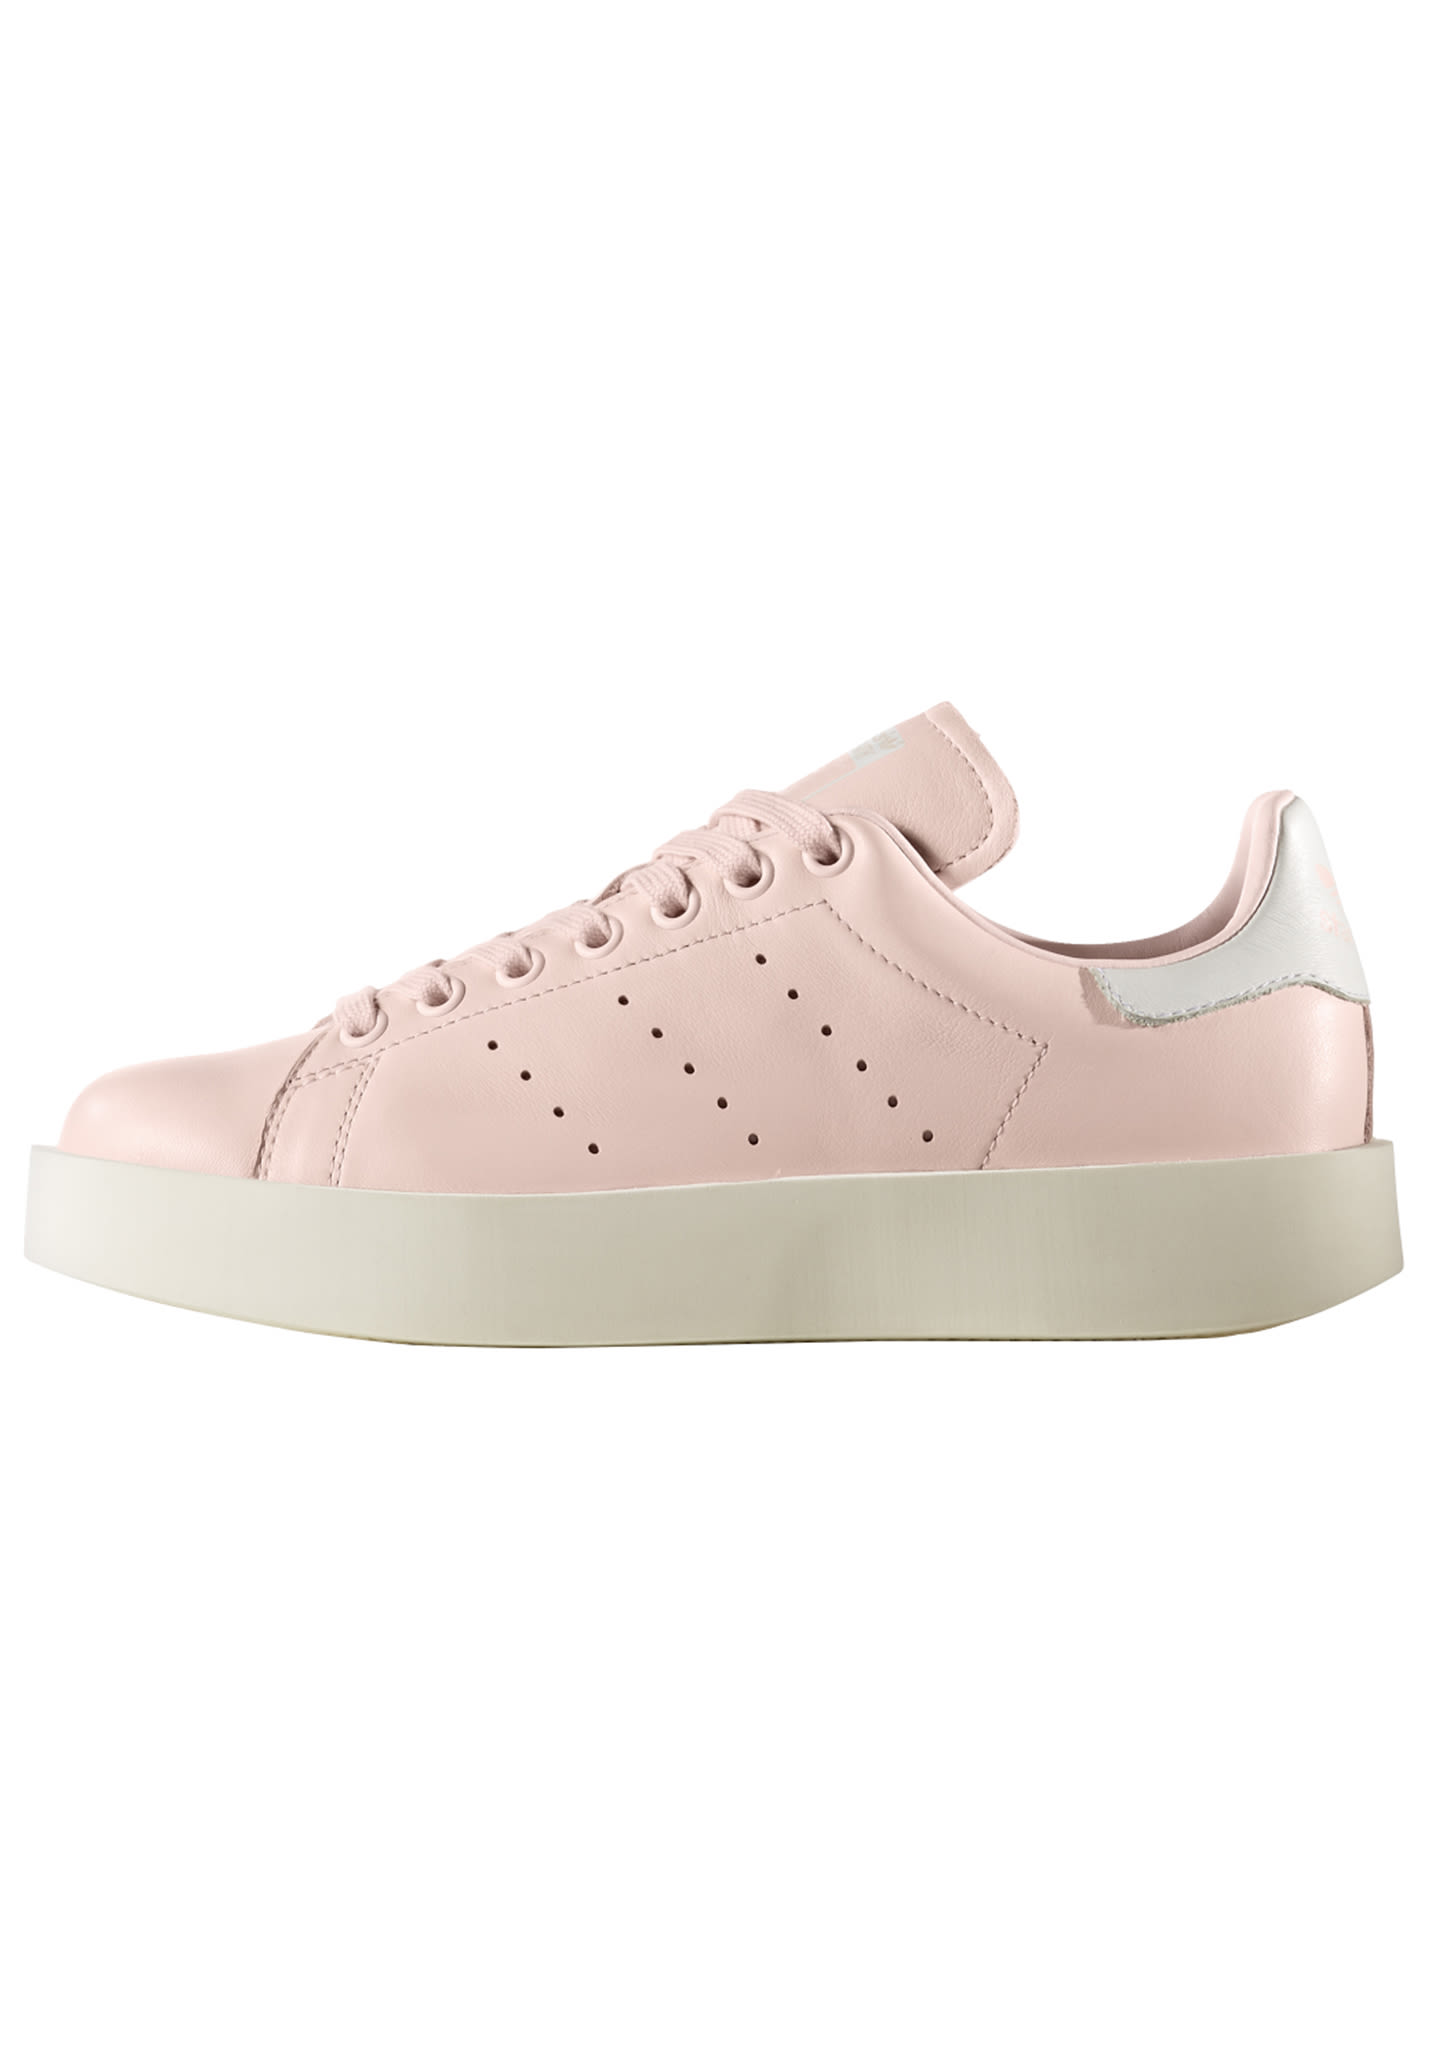 328d03e28d0 ADIDAS ORIGINALS Stan Smith Bold - Sneakers for Women - Pink - Planet Sports